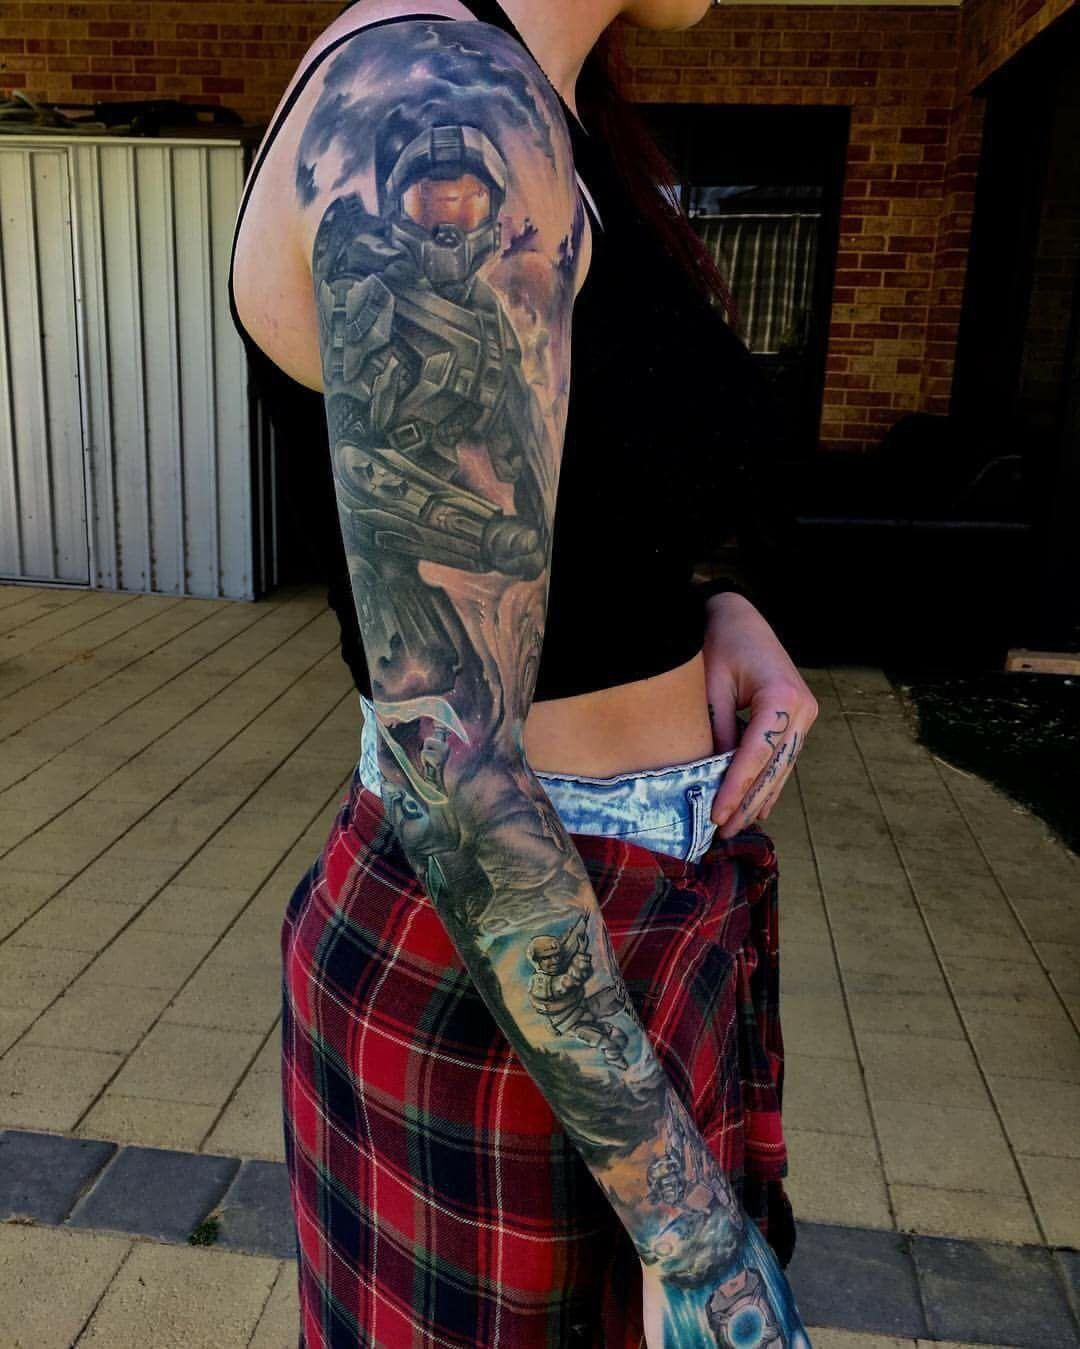 Xbox Tattoo Ideas: My Halo Sleeve I Have The Arbiter On The Inside Of My